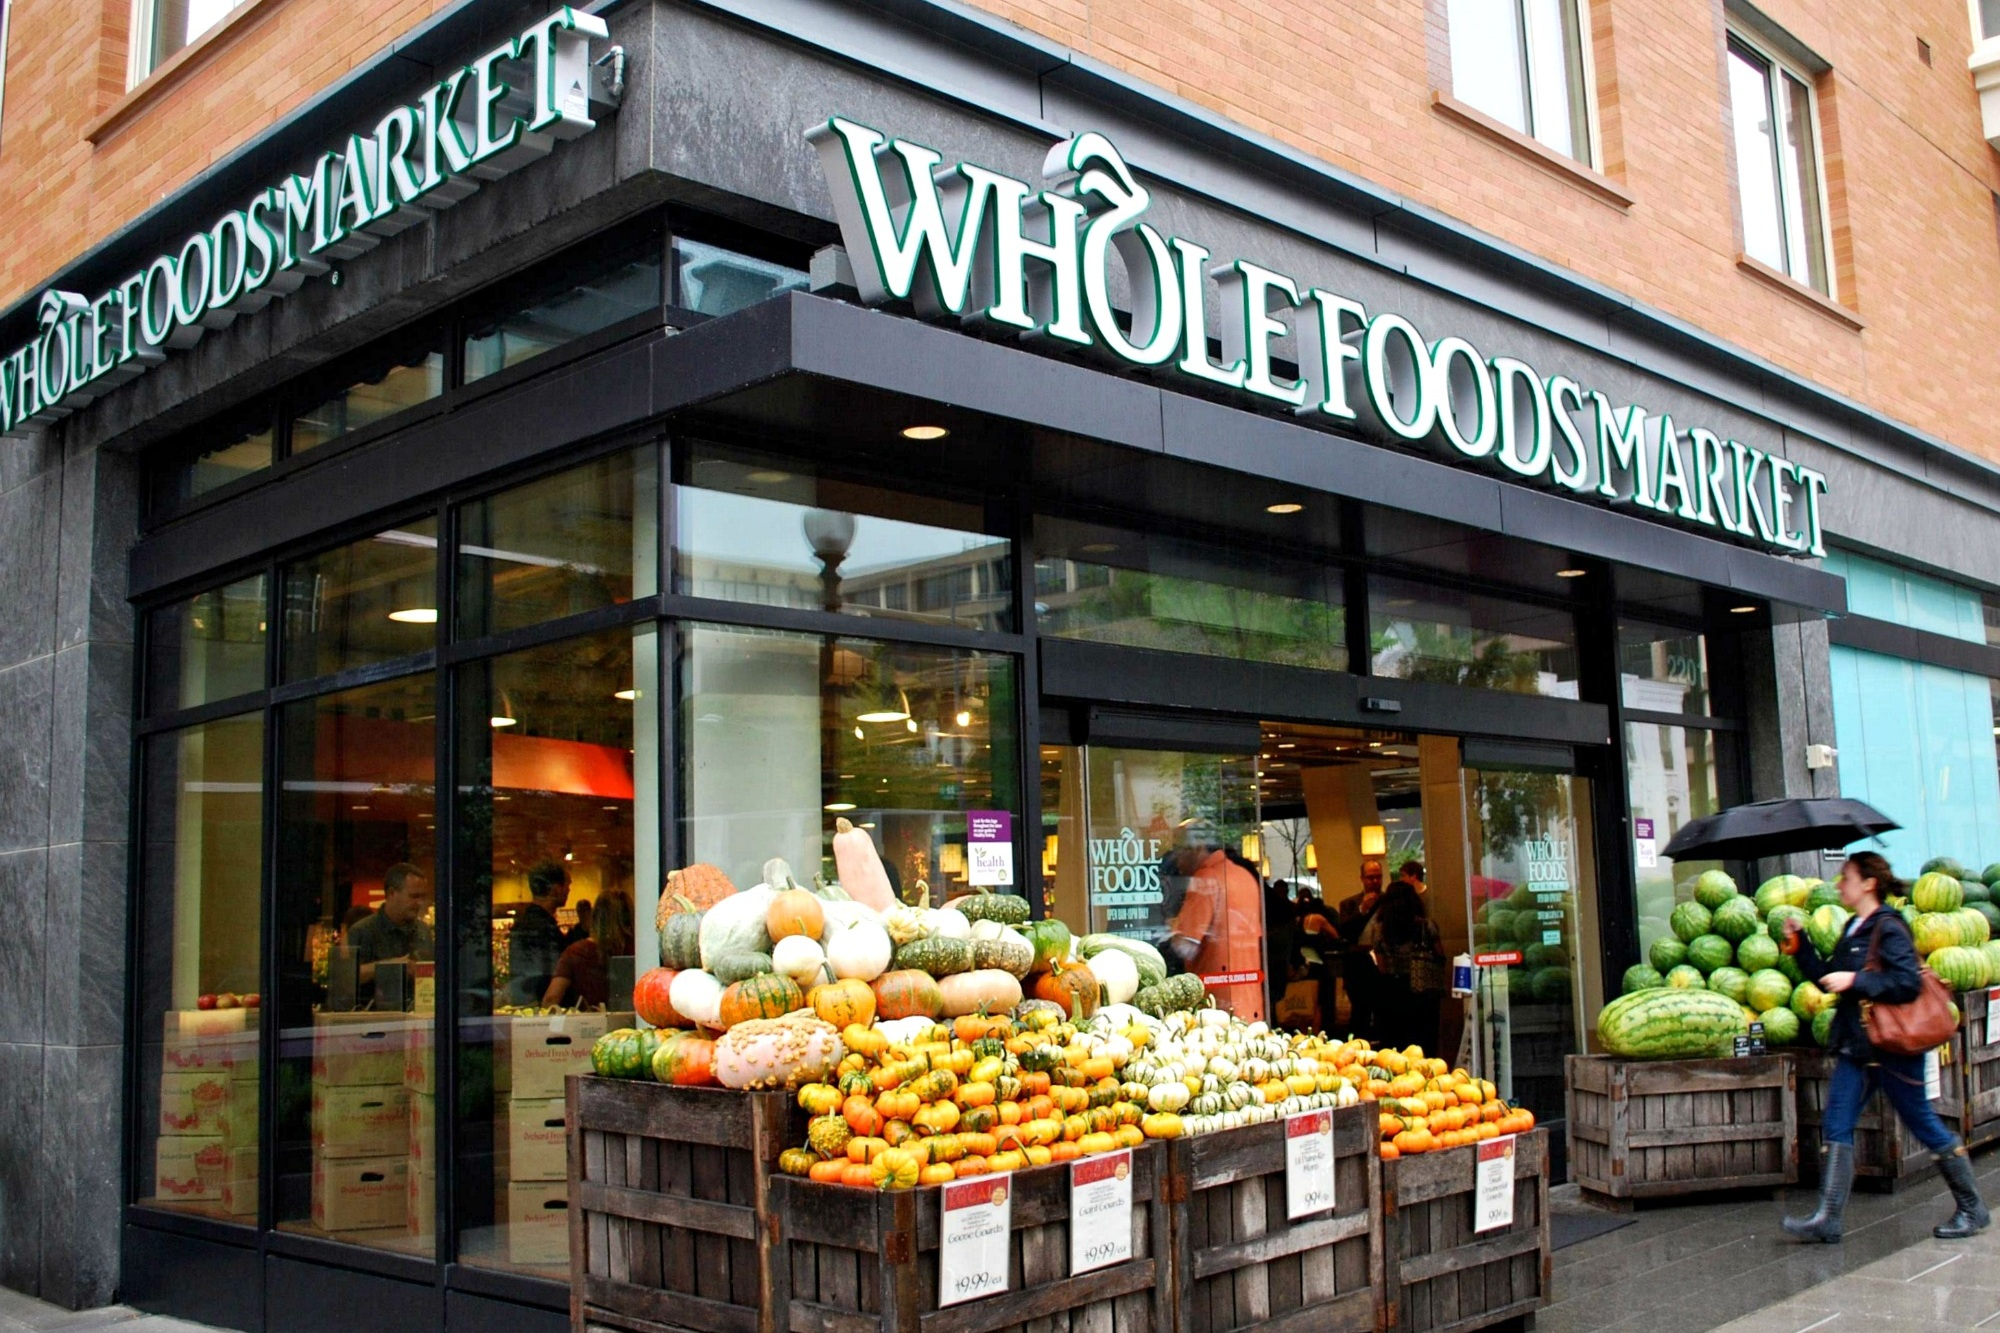 WHOLE FOODS - Communications Plan